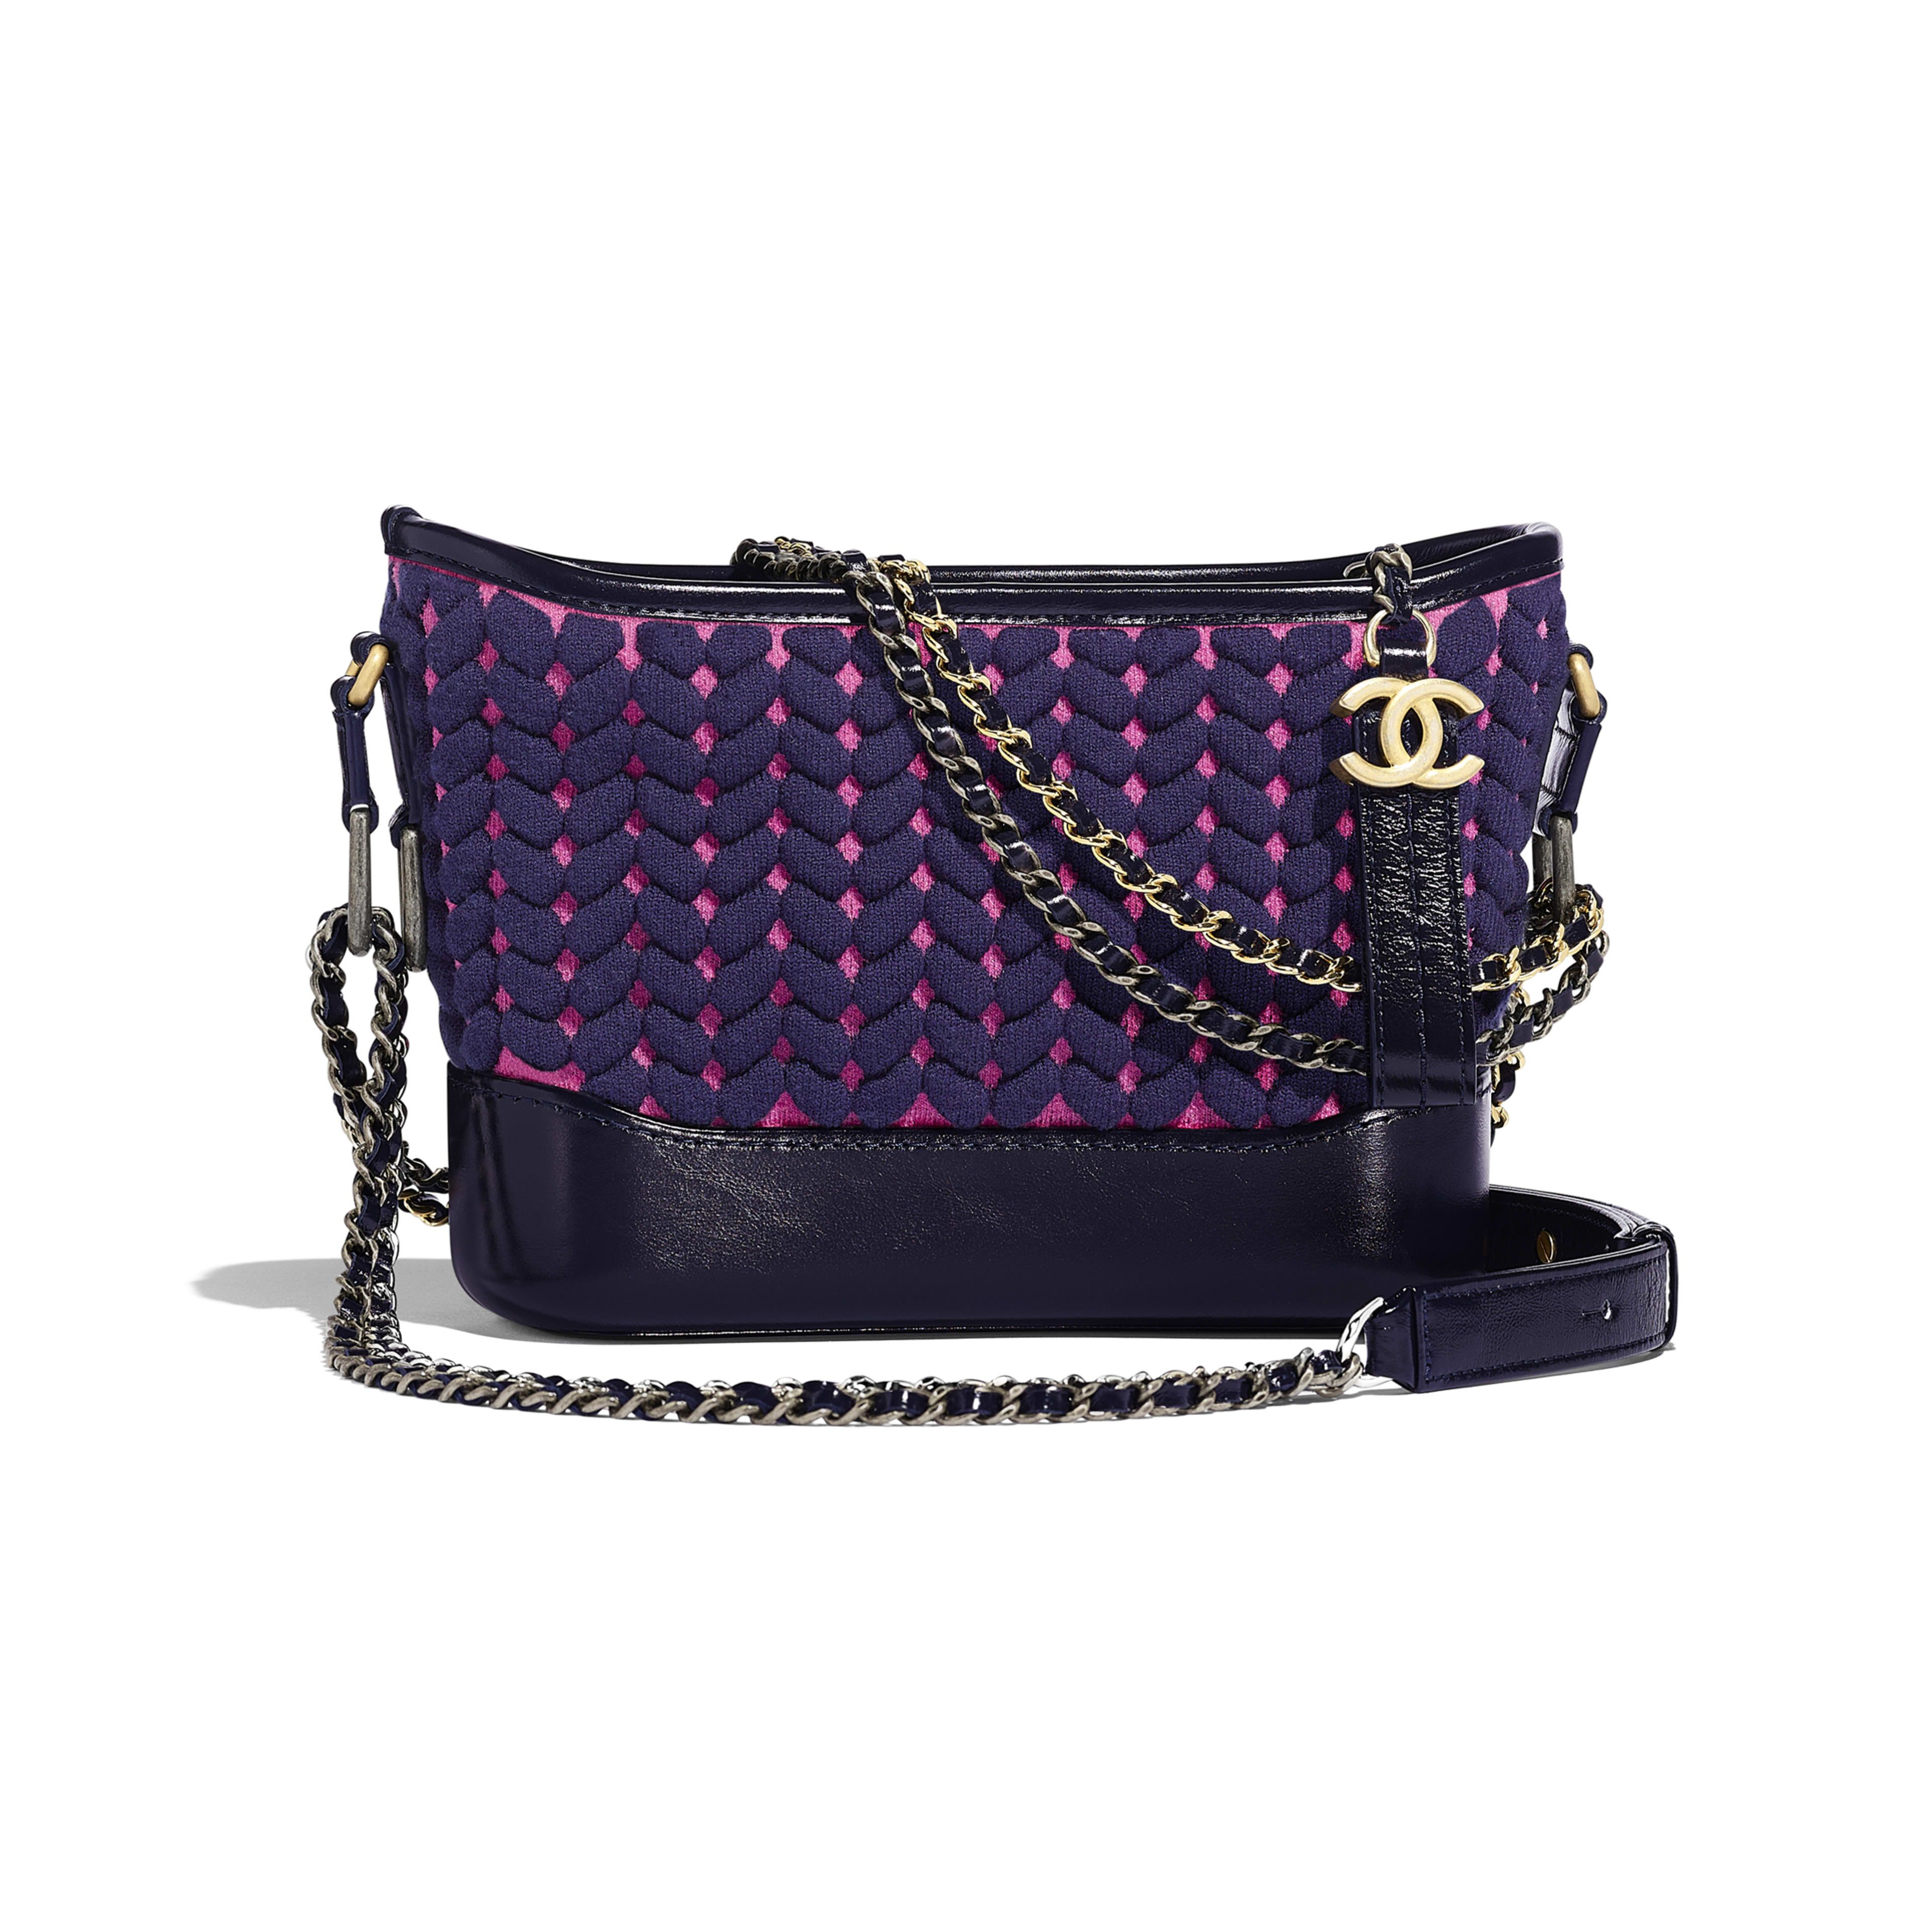 ad7d7980a85476 CHANEL'S GABRIELLE Small Hobo Bag - Blue & Pink - Wool, Calfskin, Gold-Tone  & Silver-Tone Metal - Default view - see full sized version